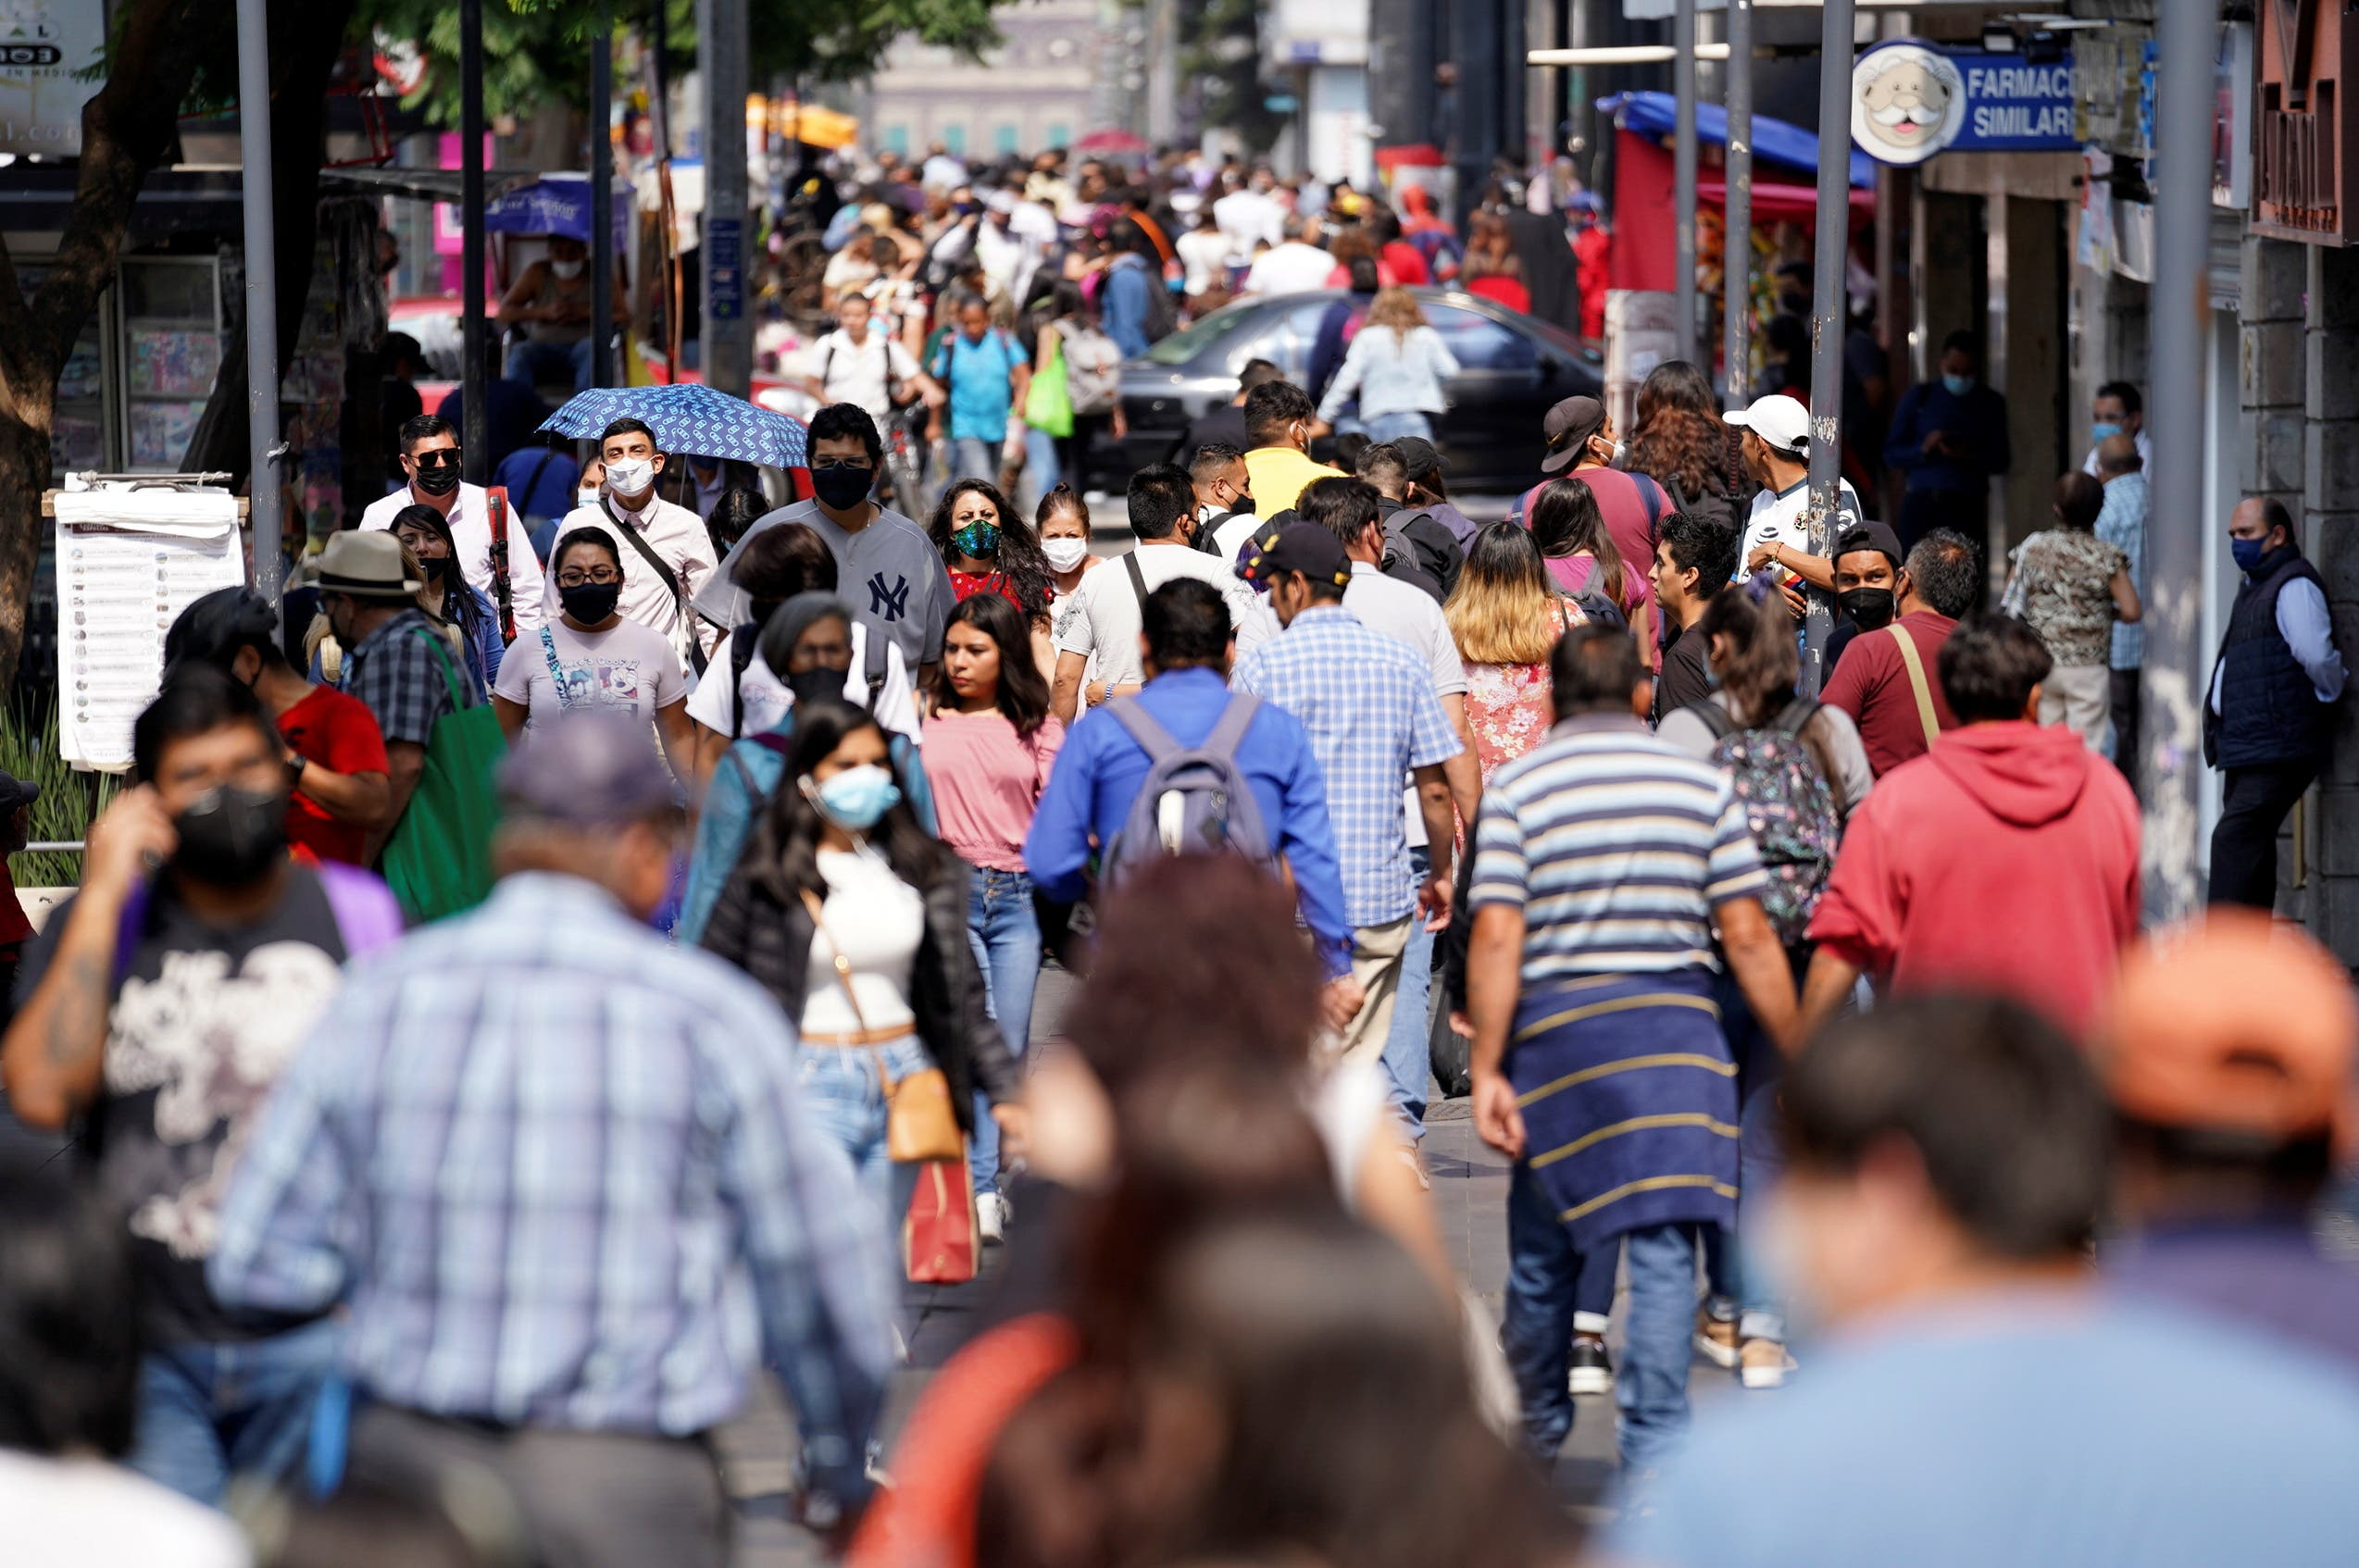 People walk along a crowded street at a commercial area as the coronavirus disease (COVID-19) outbreak continues in Mexico City, Mexico July 23, 2021. (Reuters)